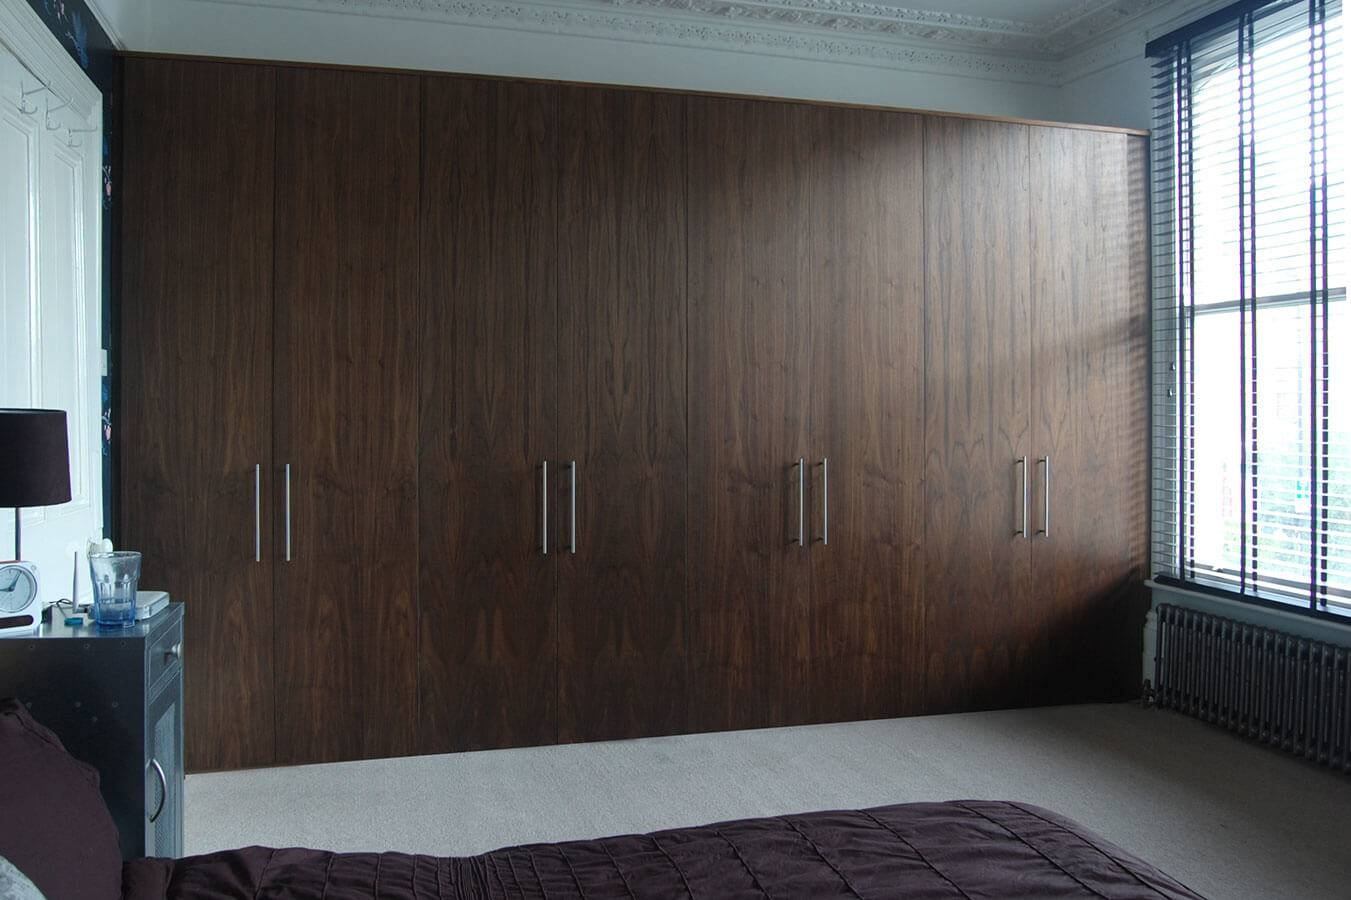 Fitted Bedrooms | Wardrobes, Beds And Chests Of Drawers in Walnut Wardrobes (Image 5 of 15)